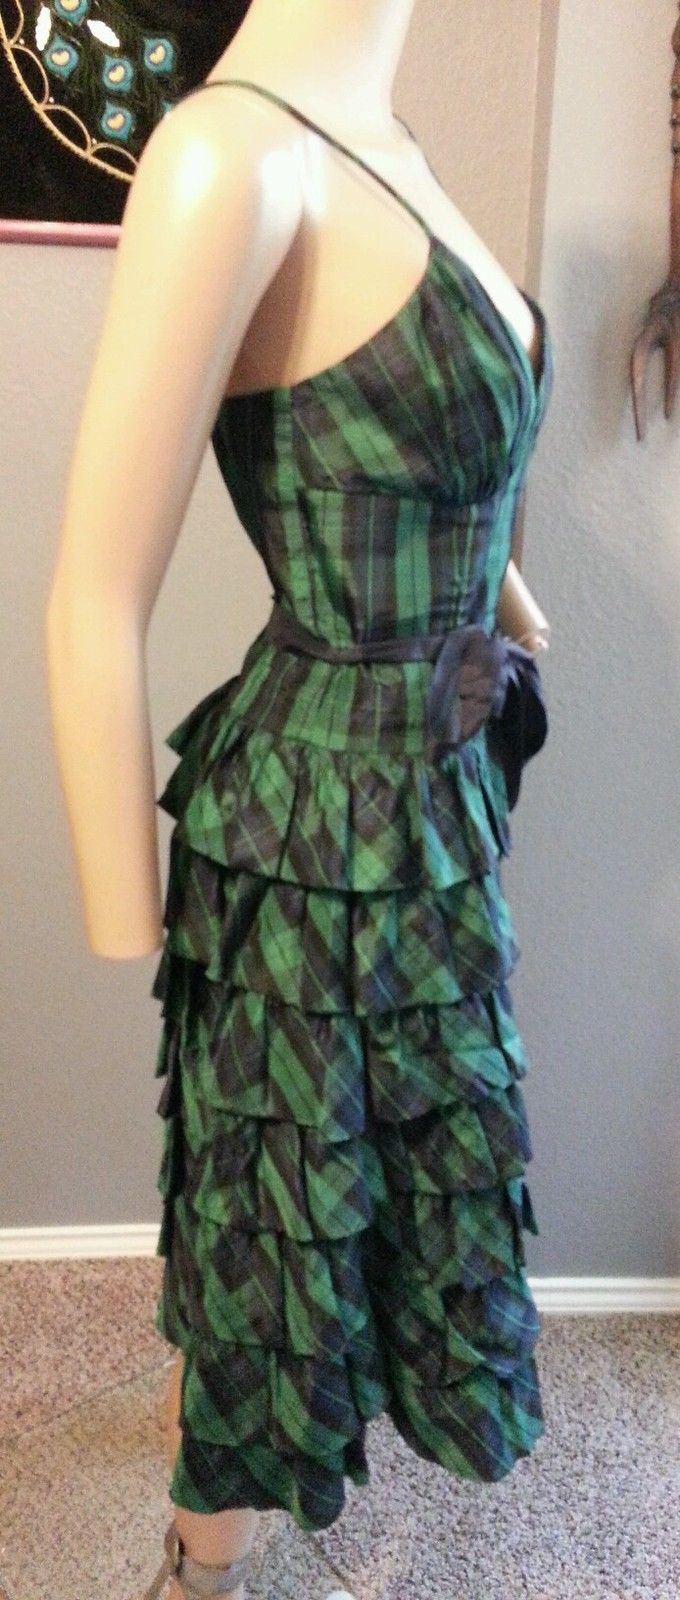 Vtg 90's Betsey Johnson NY Tartan Plaid Goth Grunge Tiered Party Dress 6